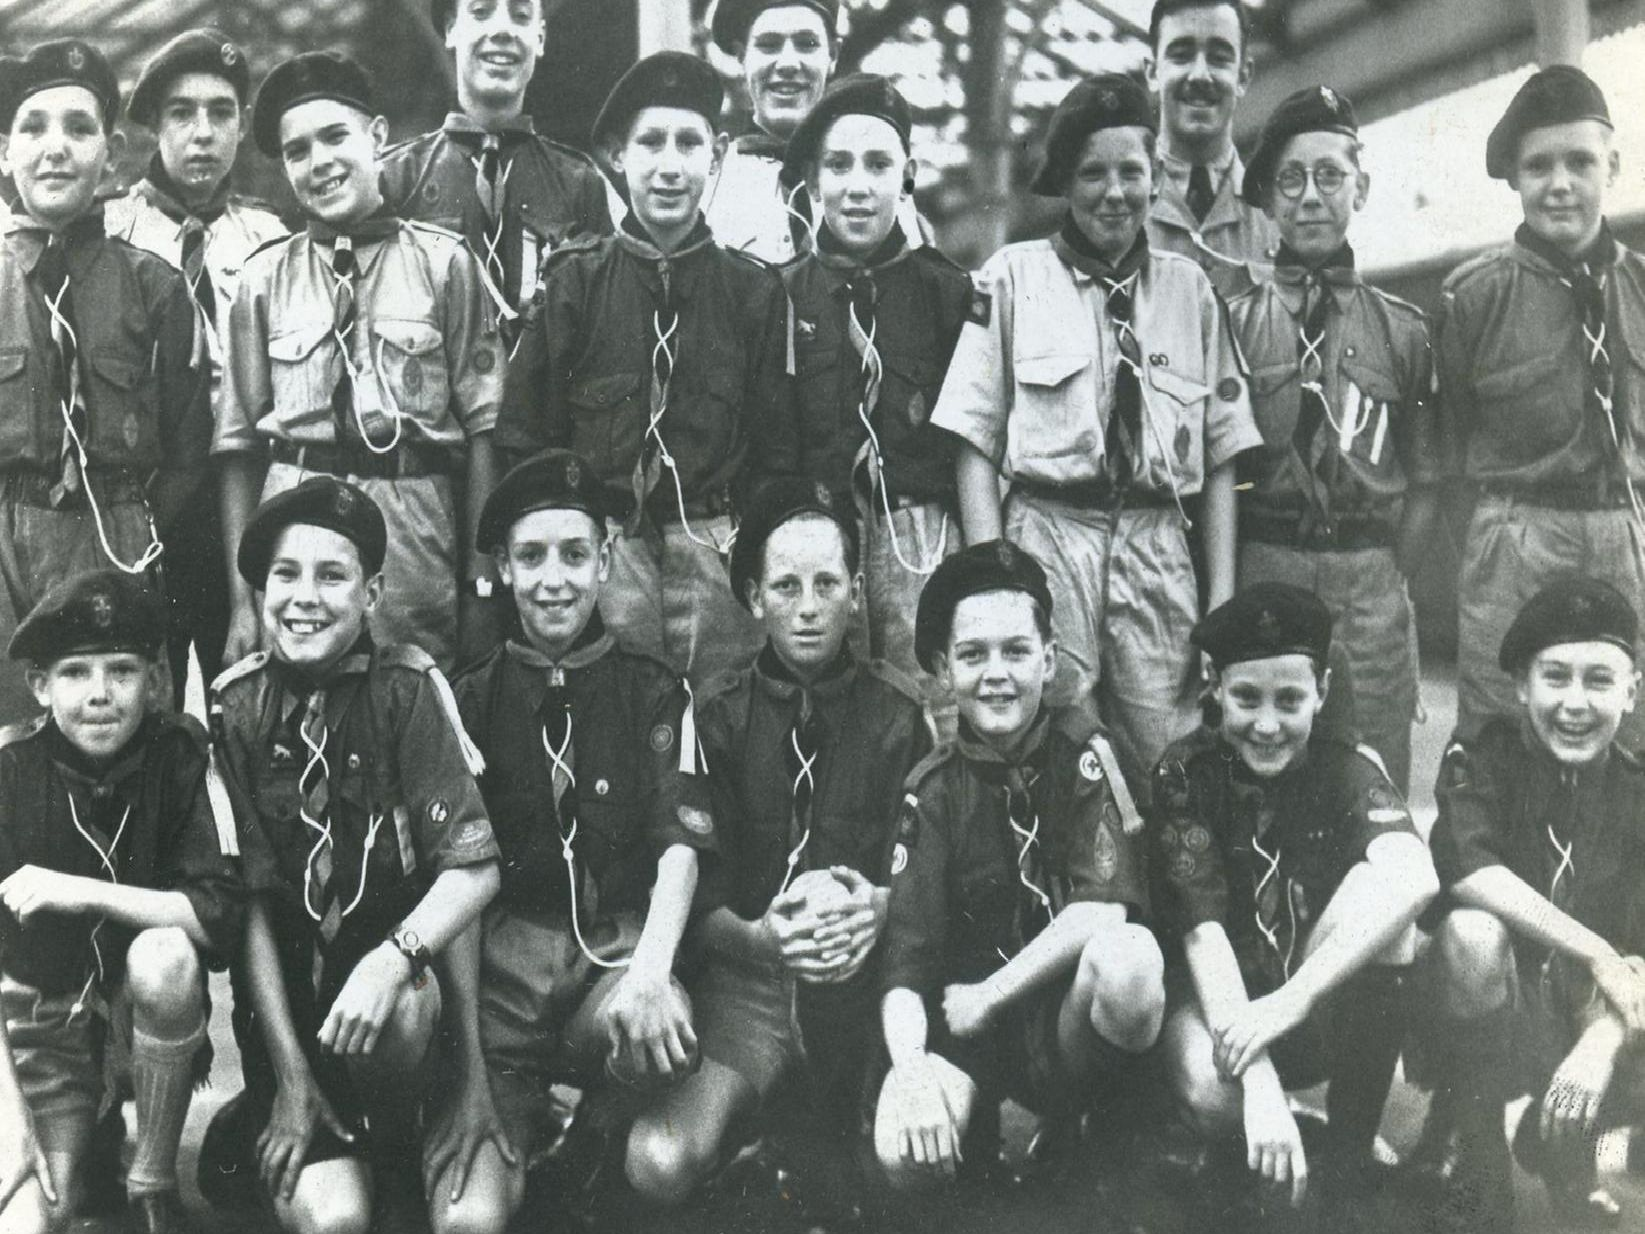 One of the oldest photos, taken on August 8 1958, shows a group of scouts from 27th Blackpool South Shore Baptist, pictured at the start of their journey to Ulster.'The excitement on their faces is obvious, they look eager to get on the train to start the trip.